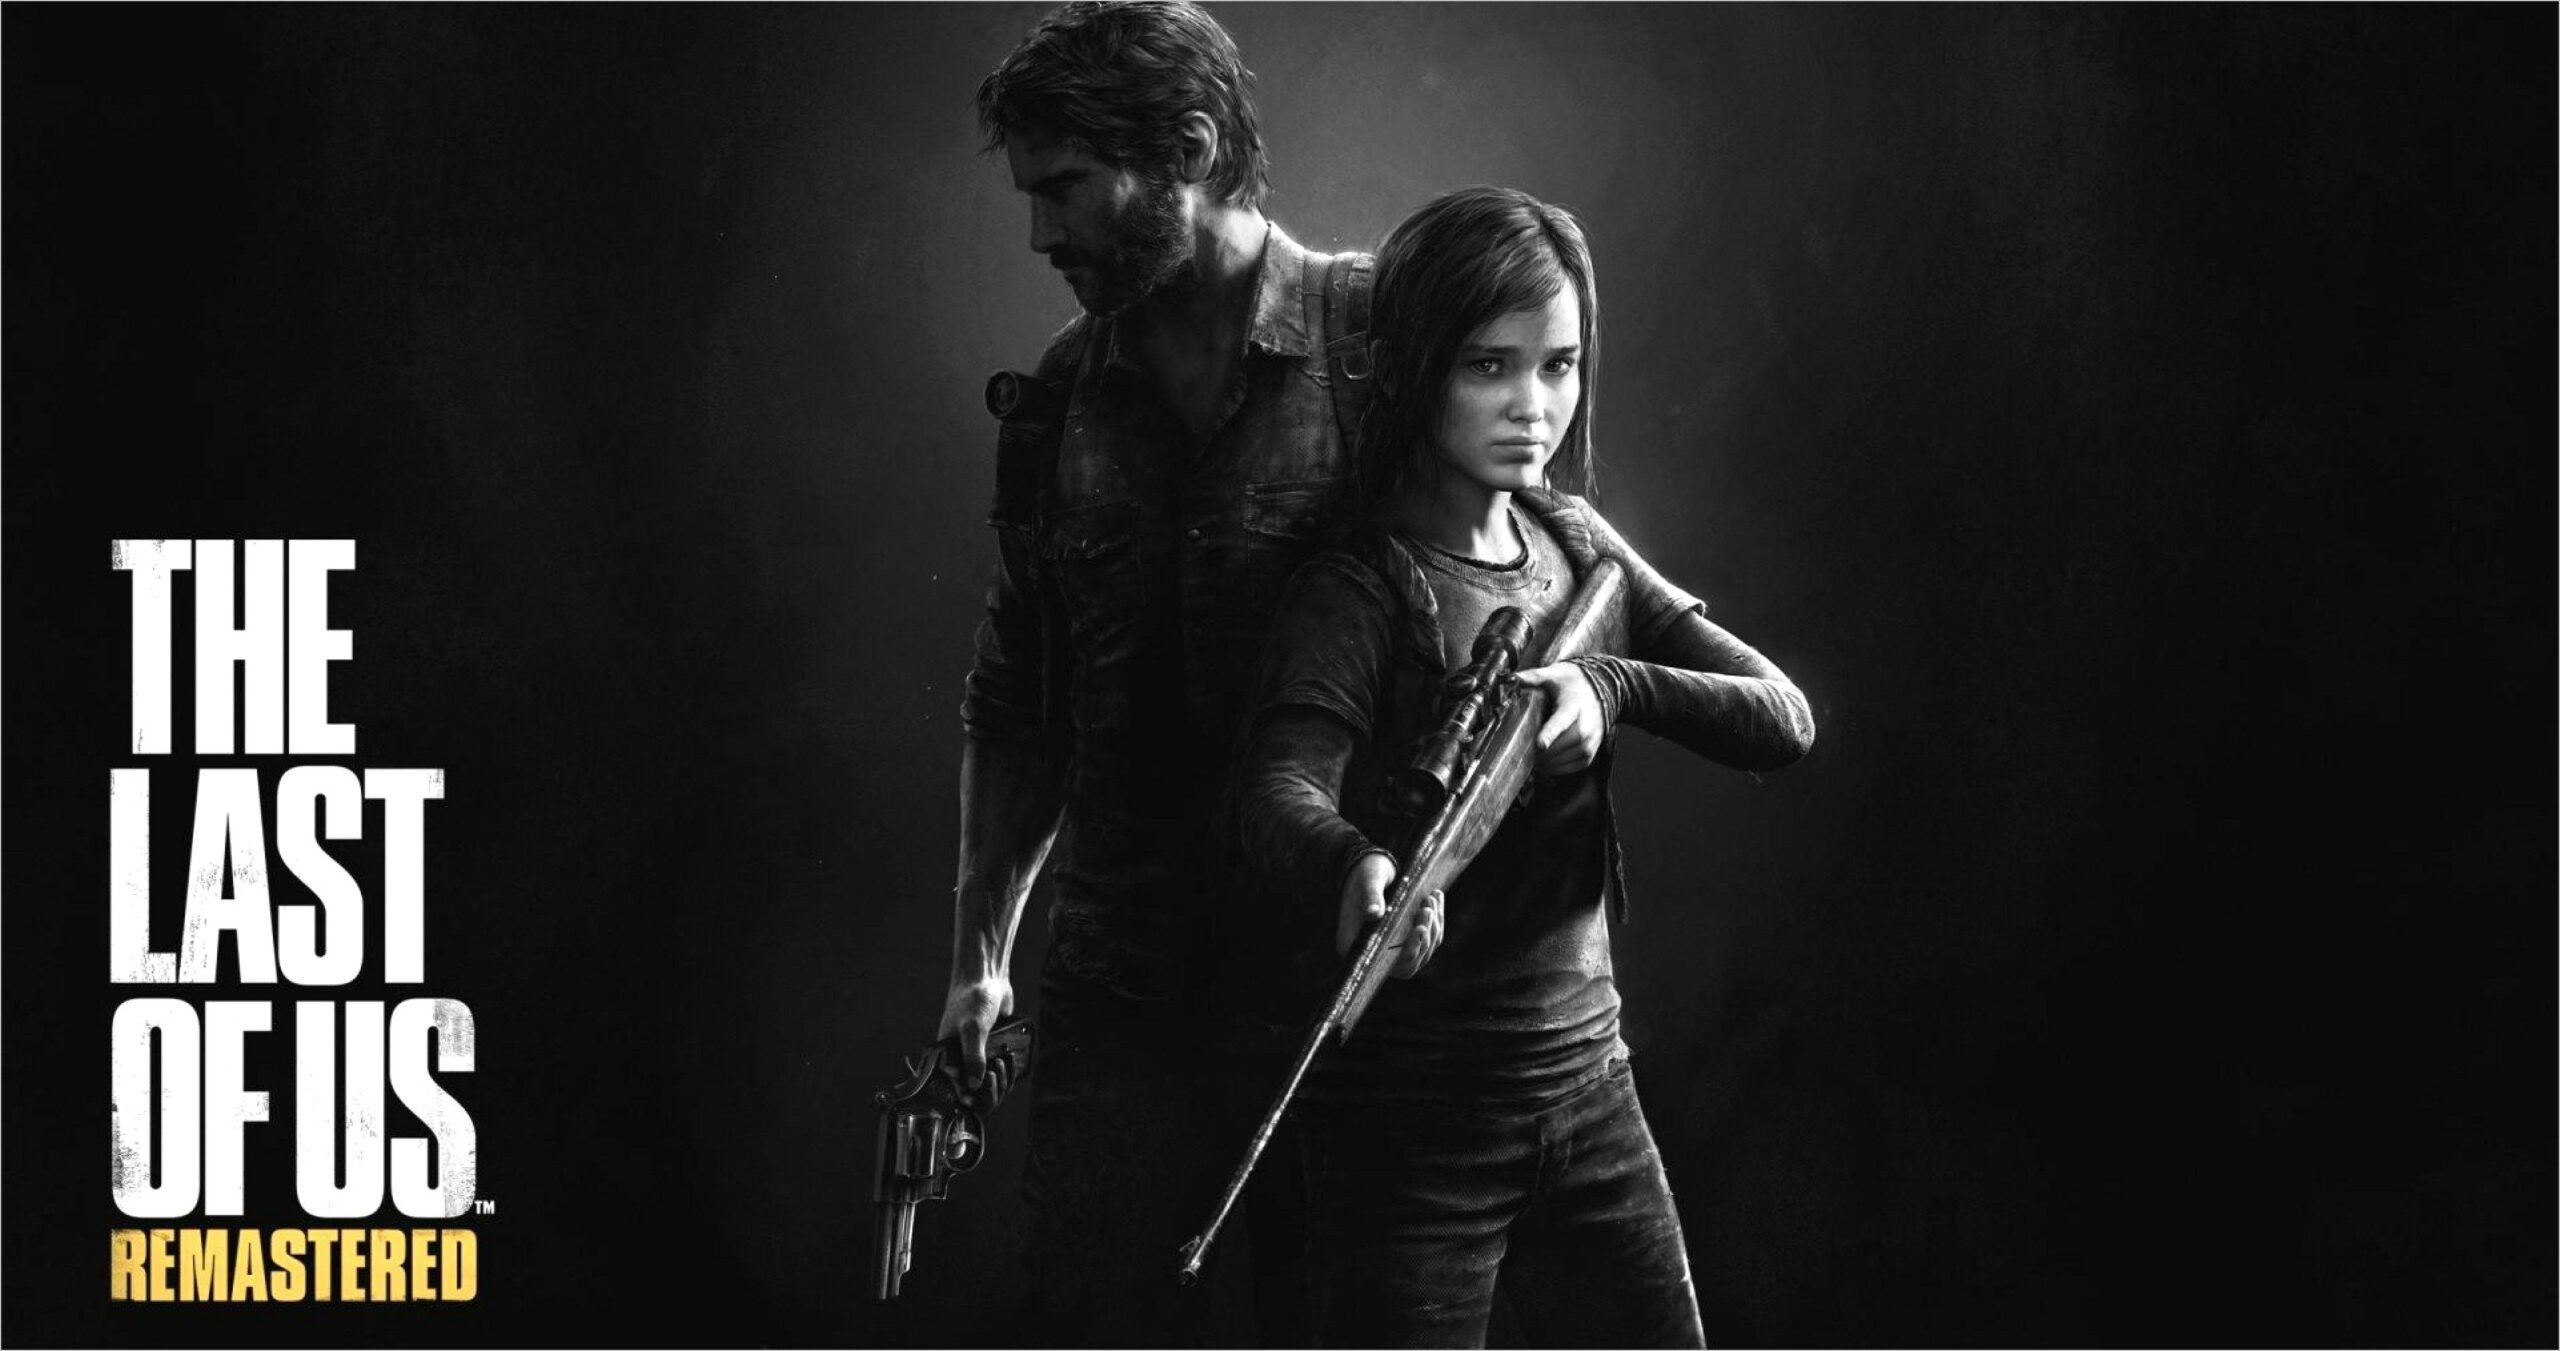 The Last Of Us Wallpaper 4k In 2020 The Last Of Us Wallpaper Concert